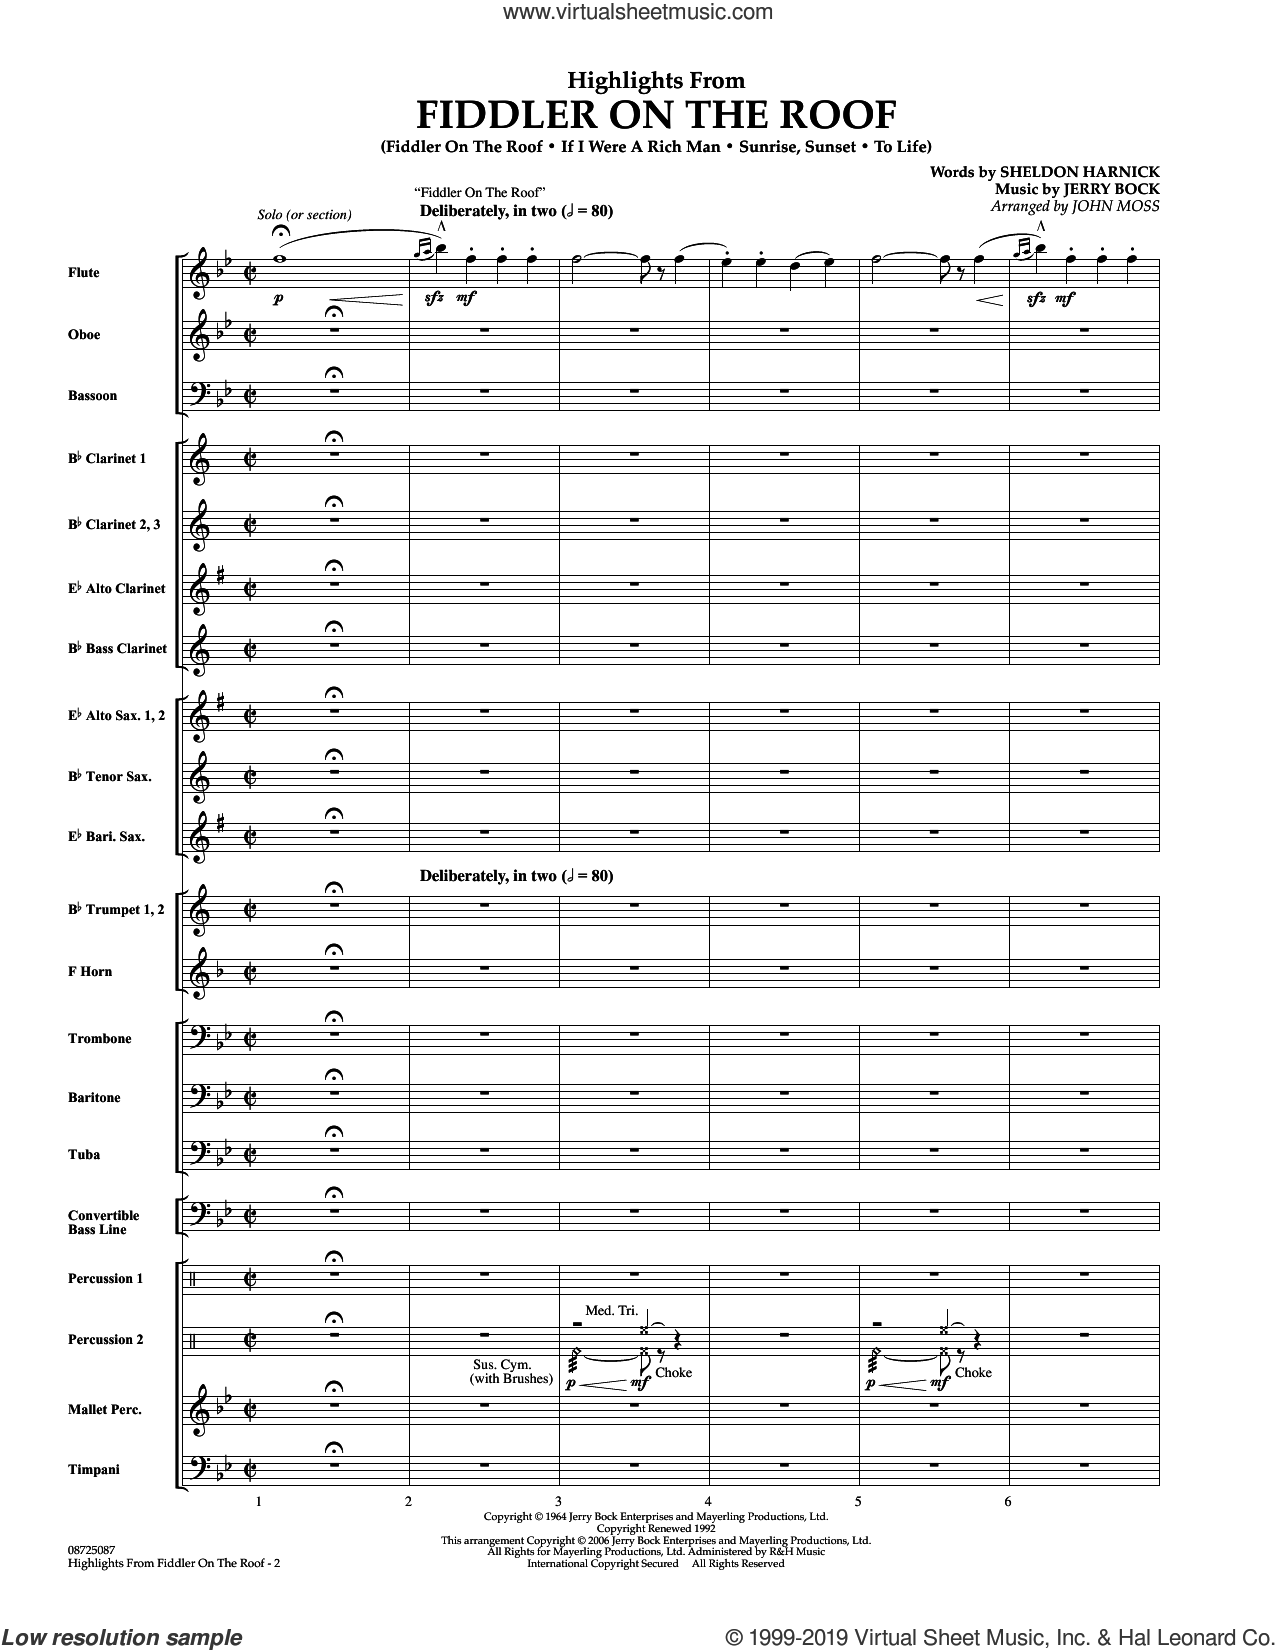 Highlights From Fiddler On The Roof (COMPLETE) sheet music for concert band by Sheldon Harnick, Jerry Bock and John Moss, intermediate skill level